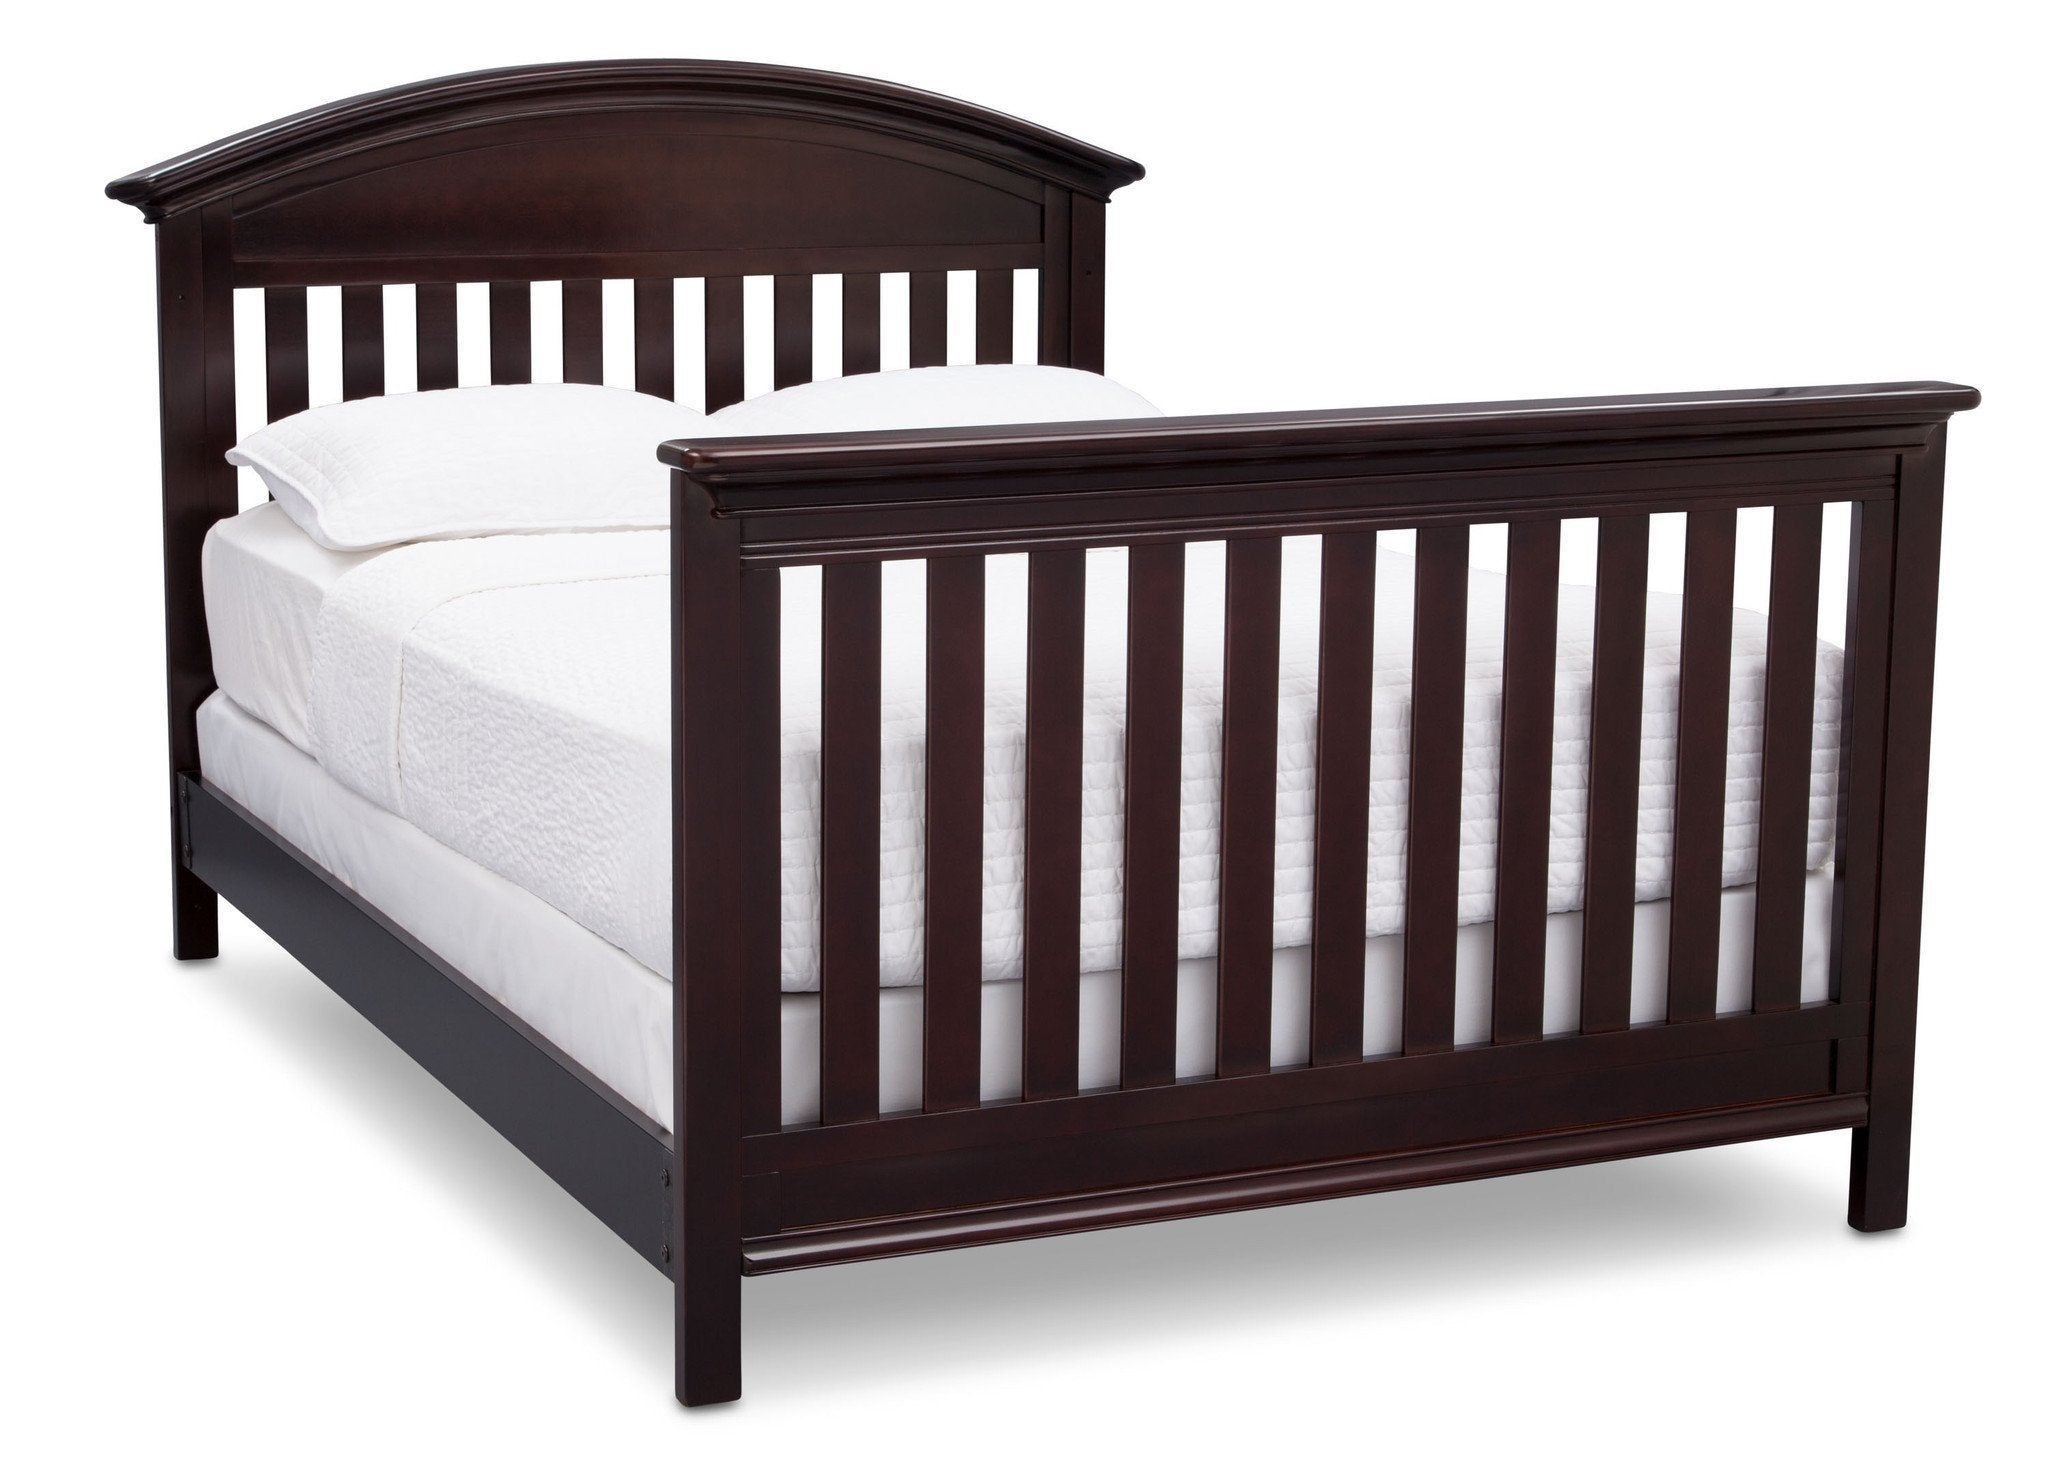 Serta Dark Chocolate (207) Aberdeen 4-in-1 Crib with Full Size Platform Bed Kit (for 4-in-1 Cribs) 700850 with Footboard c7c